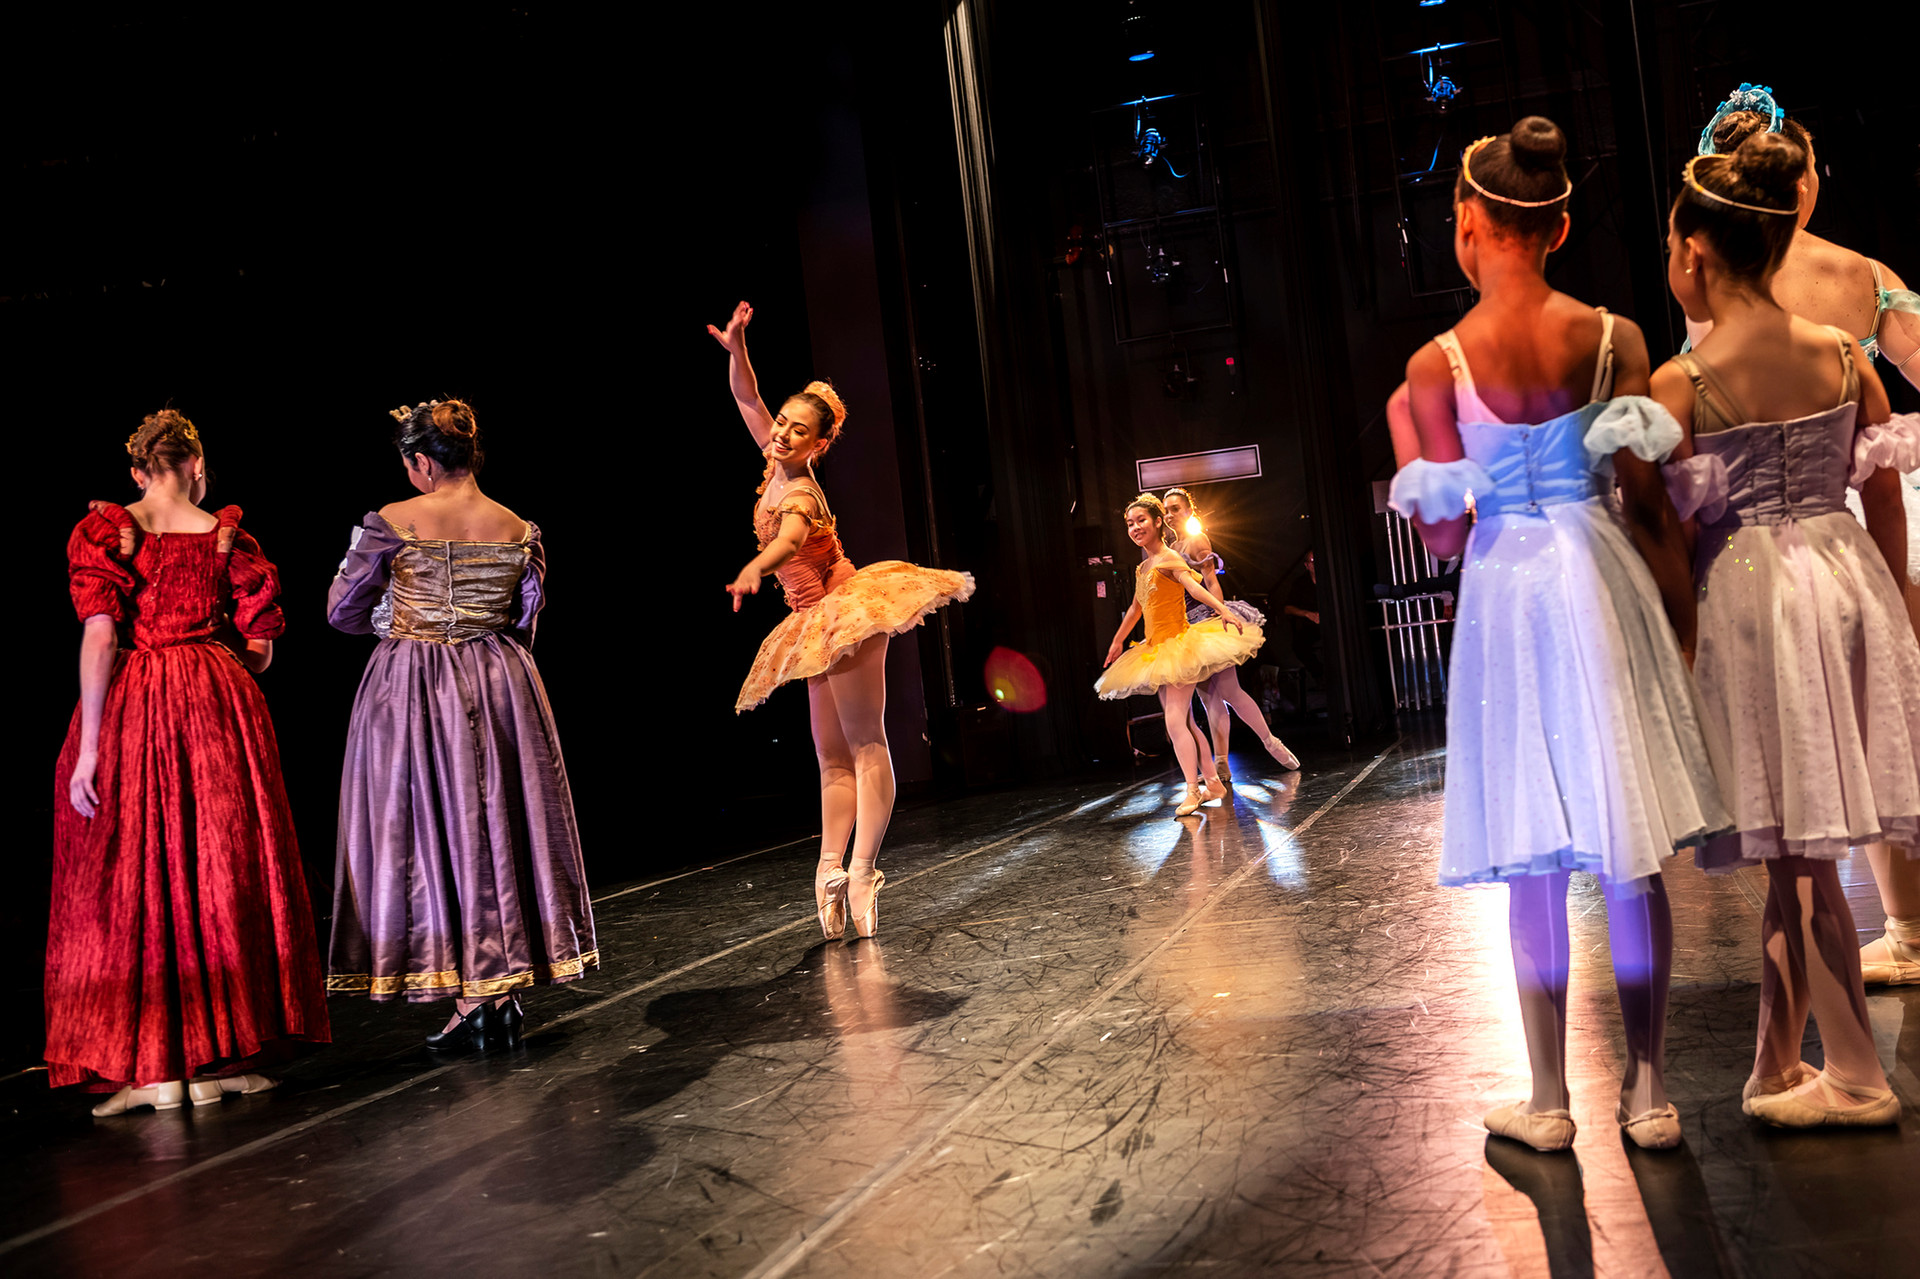 """Students from the Pittsburgh Youth Ballet Company perform in """"The Sleeping Beauty Suite"""" during the Pittsburgh's Youth Ballet Company annual Spring Performance dance recital, Saturday, June 1, 2019, at the August Wilson African American Cultural Center in Downtown."""